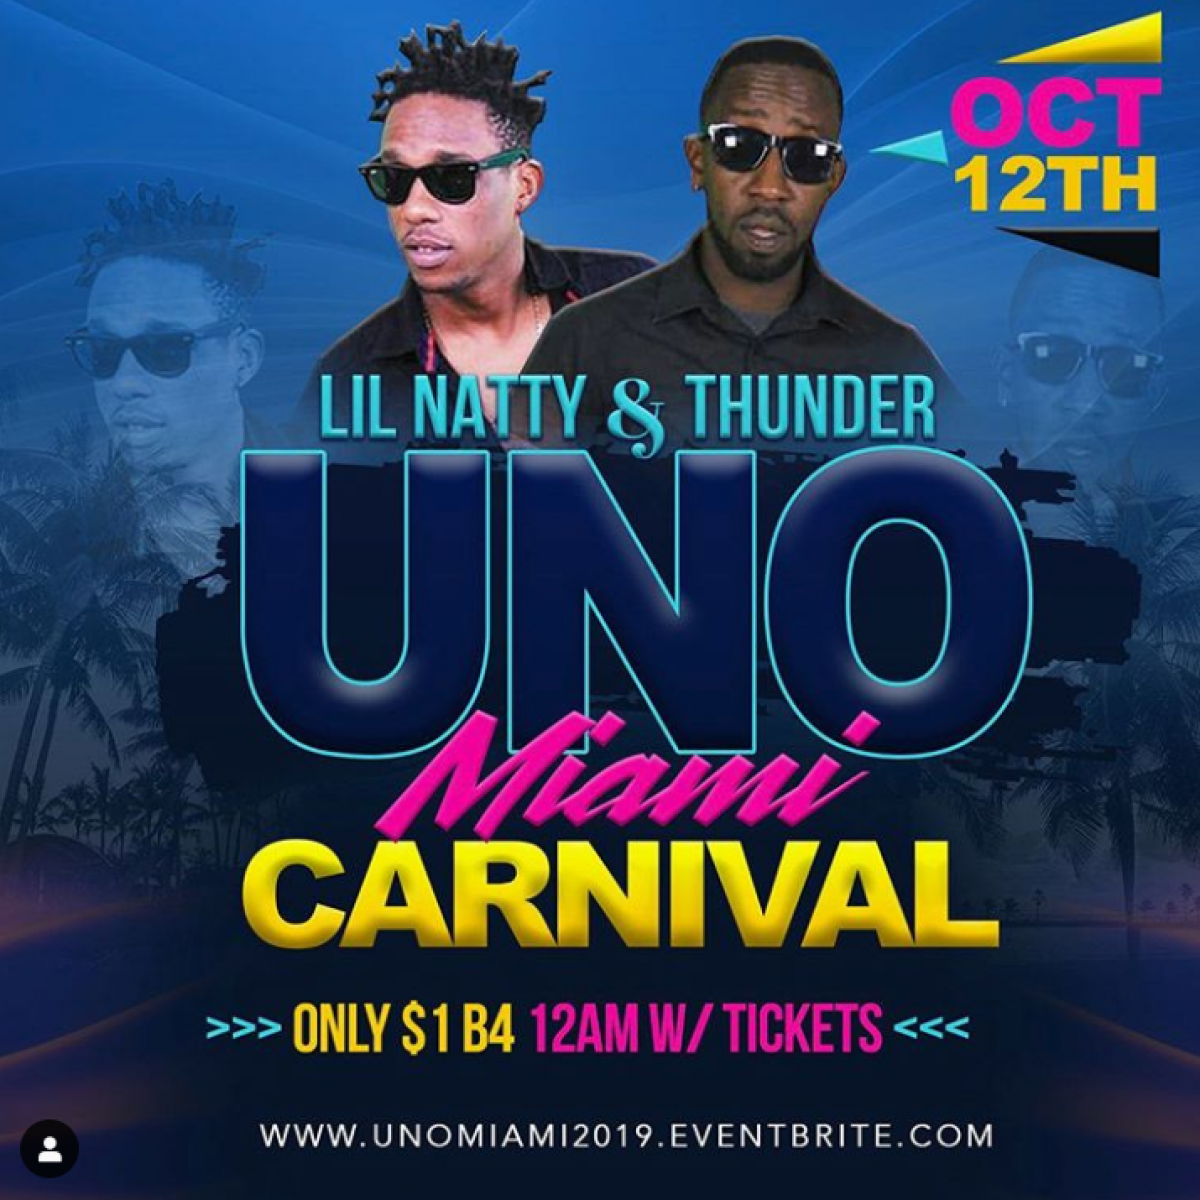 Uno  flyer or graphic.